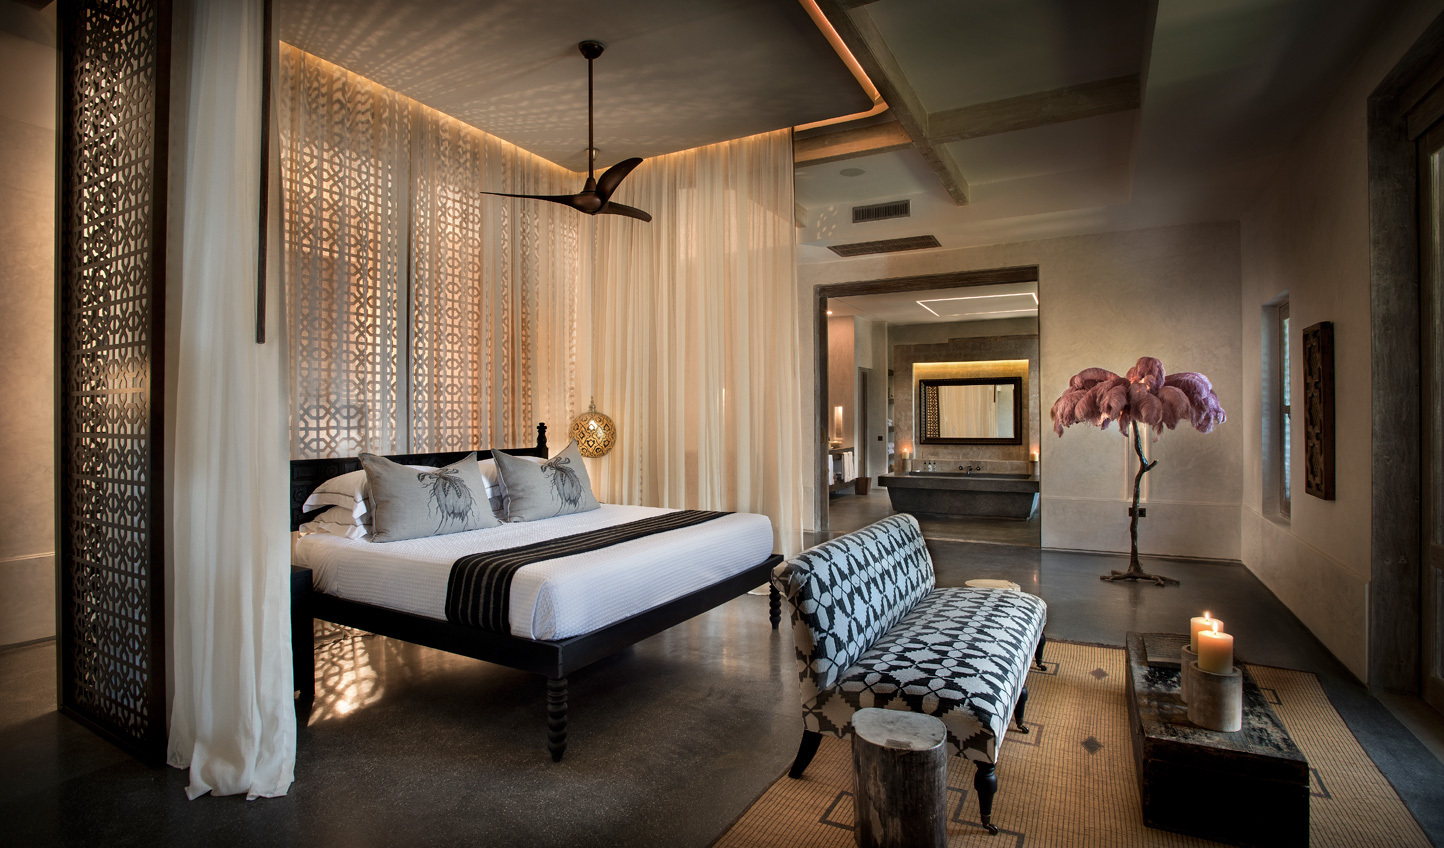 Sleek and contemporary designs in the rooms